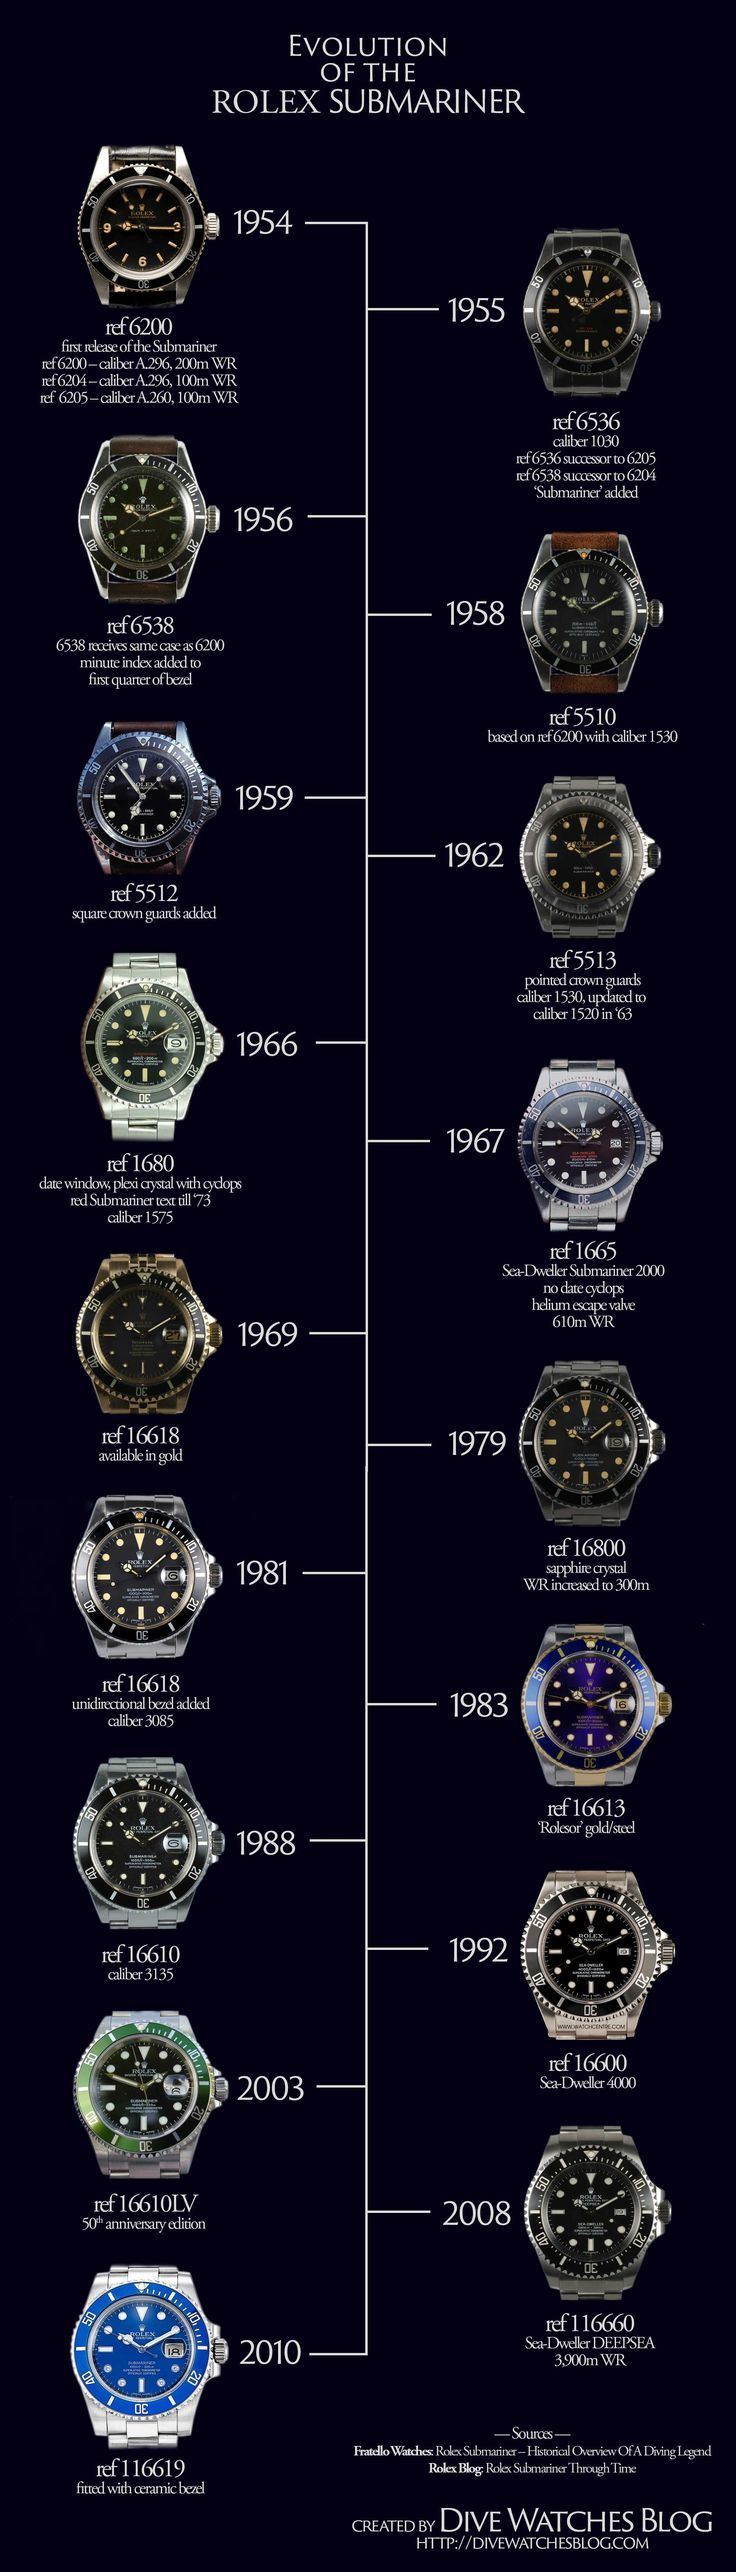 Evolution of the Rolex Submariner – a helpful infographic showcasing the gradual changes made to the iconic diver's watch over the years. #luxurywatches